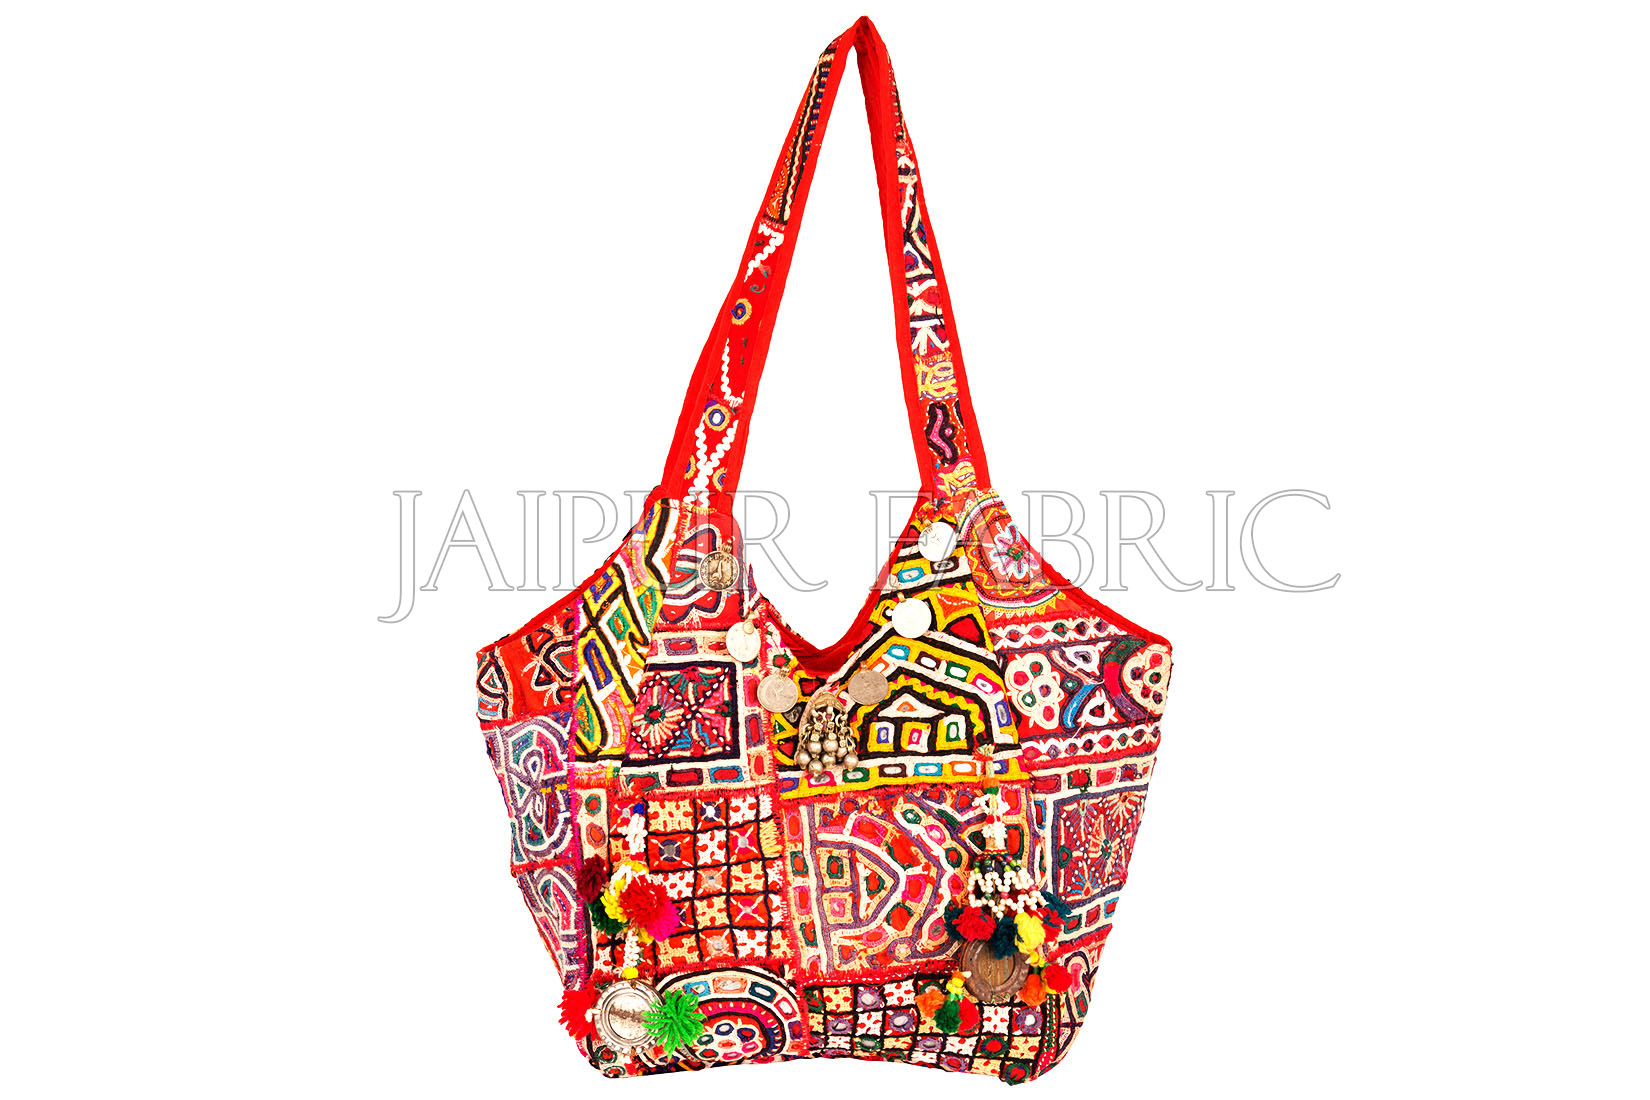 769adf305b2c Handbags from Jaipur are in Vogue